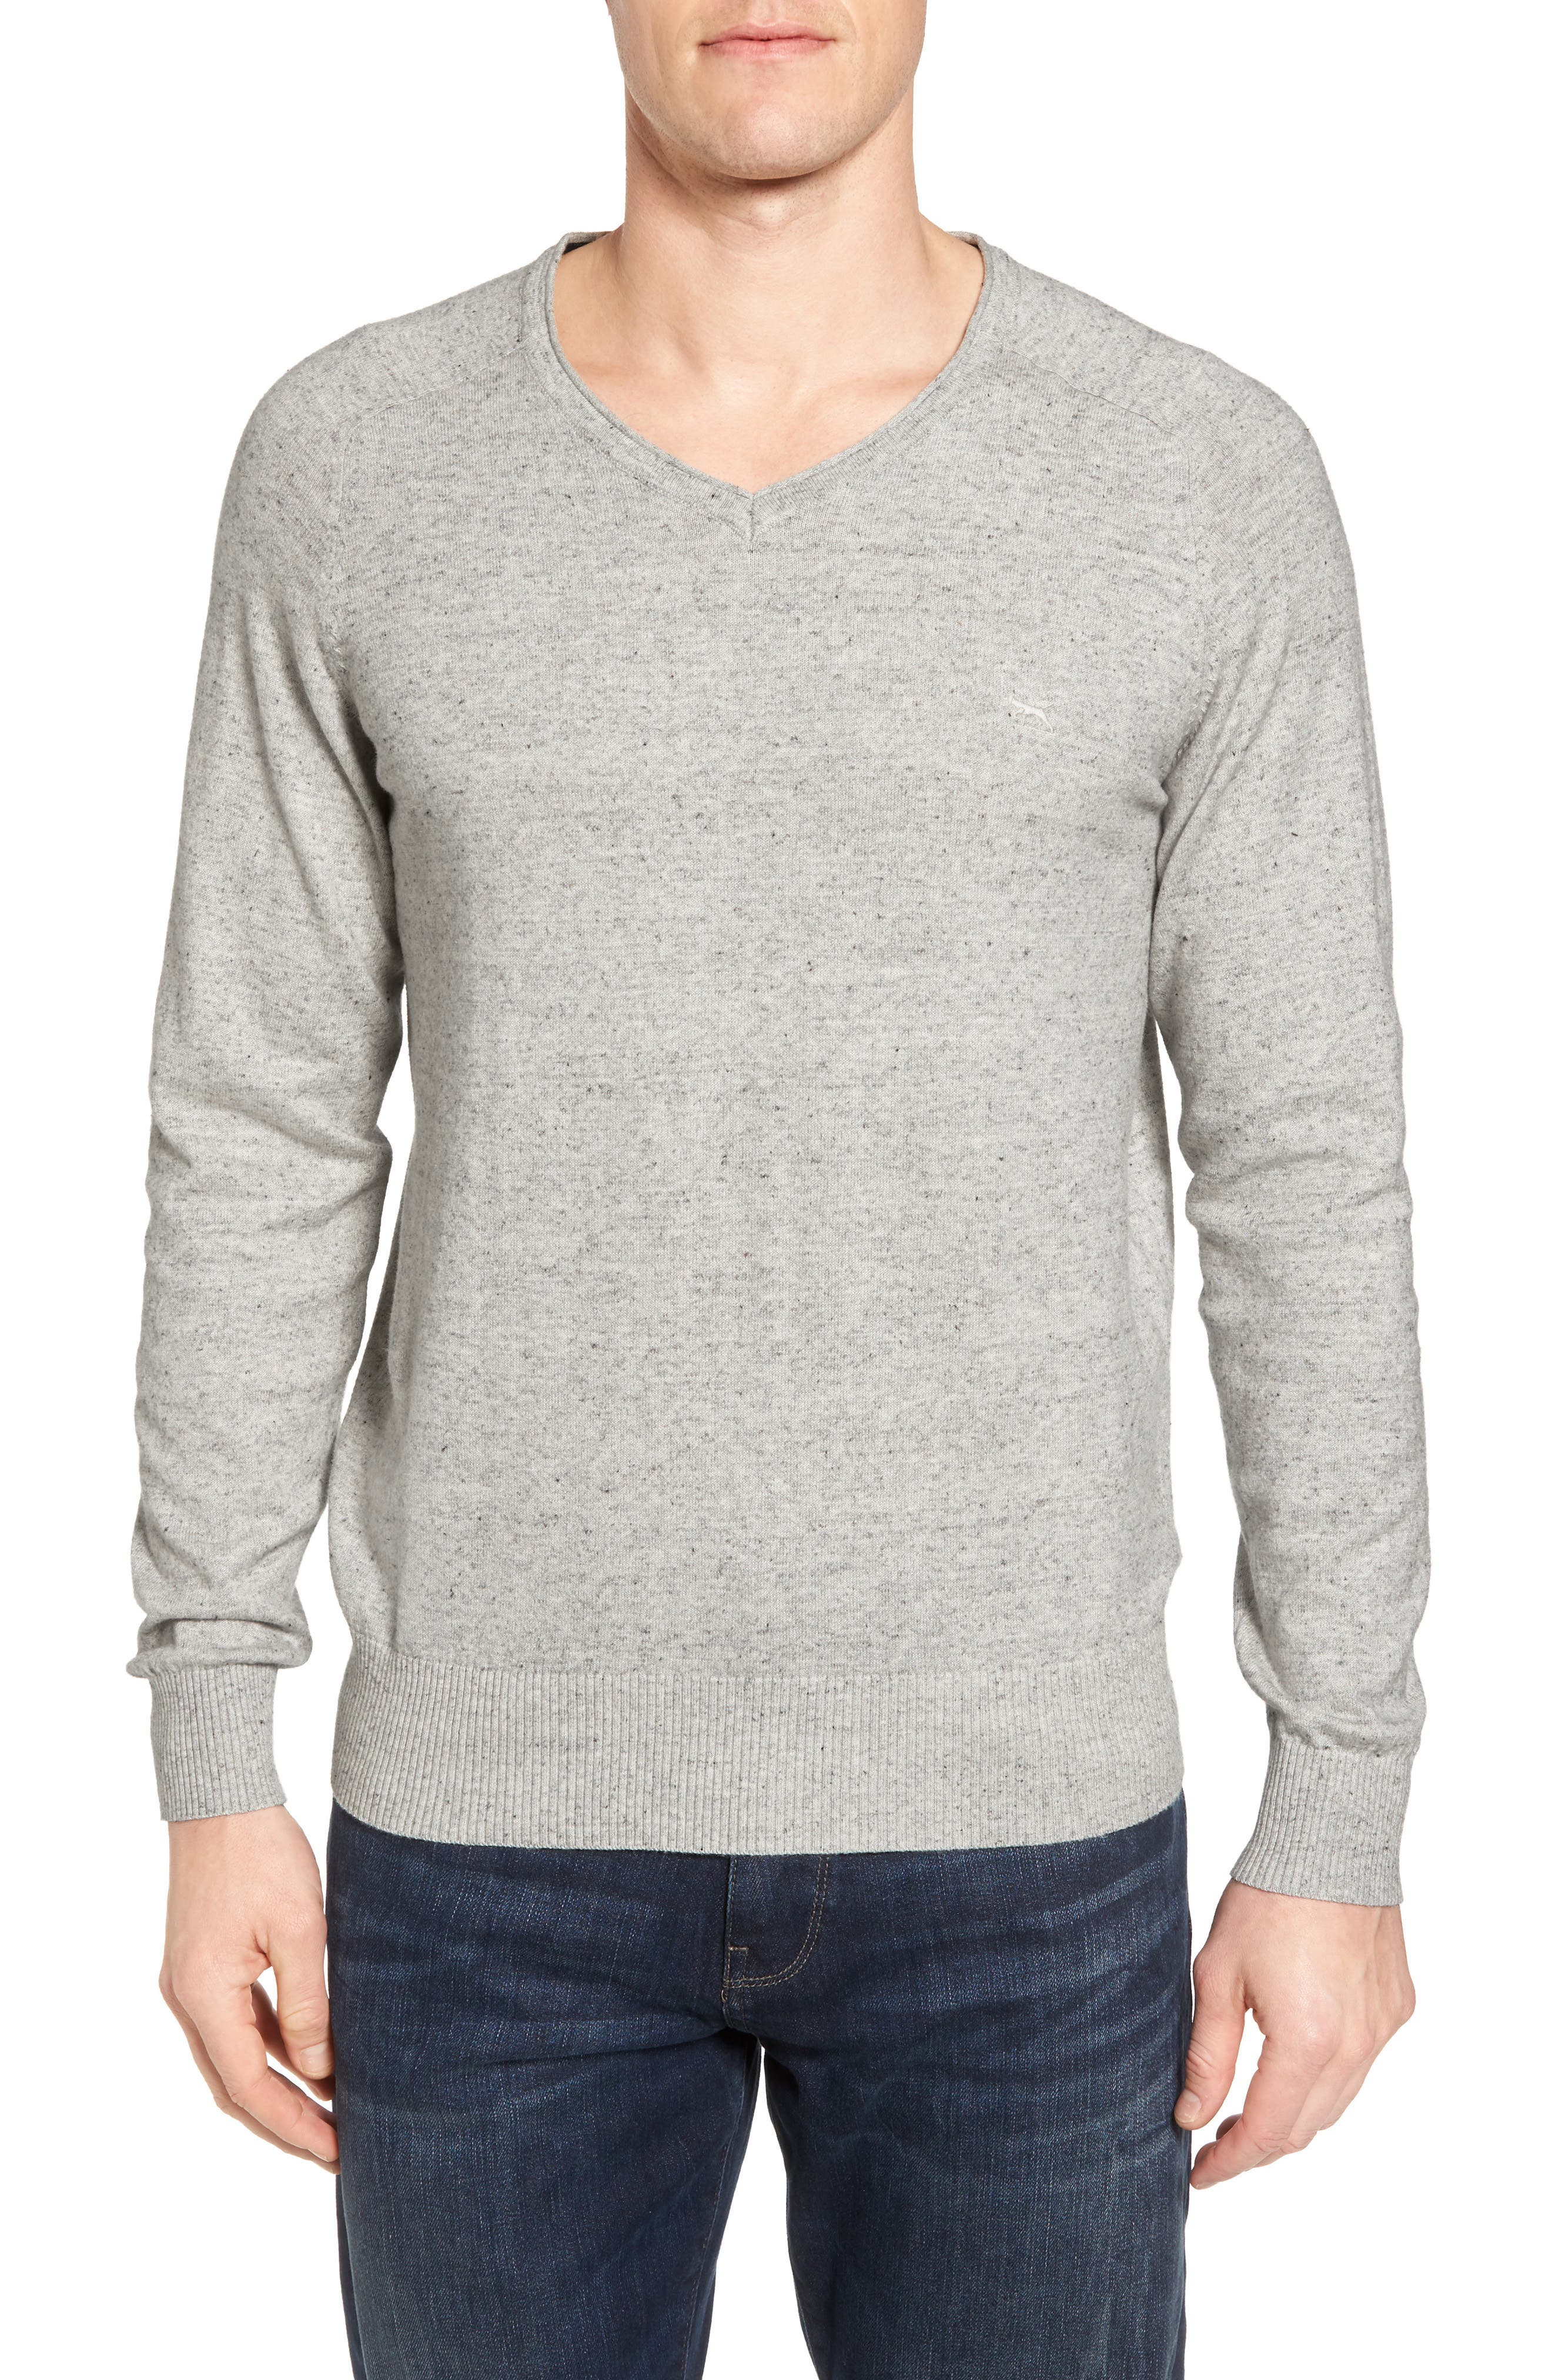 Arbors Cotton V-Neck Sweater,                         Main,                         color, 261